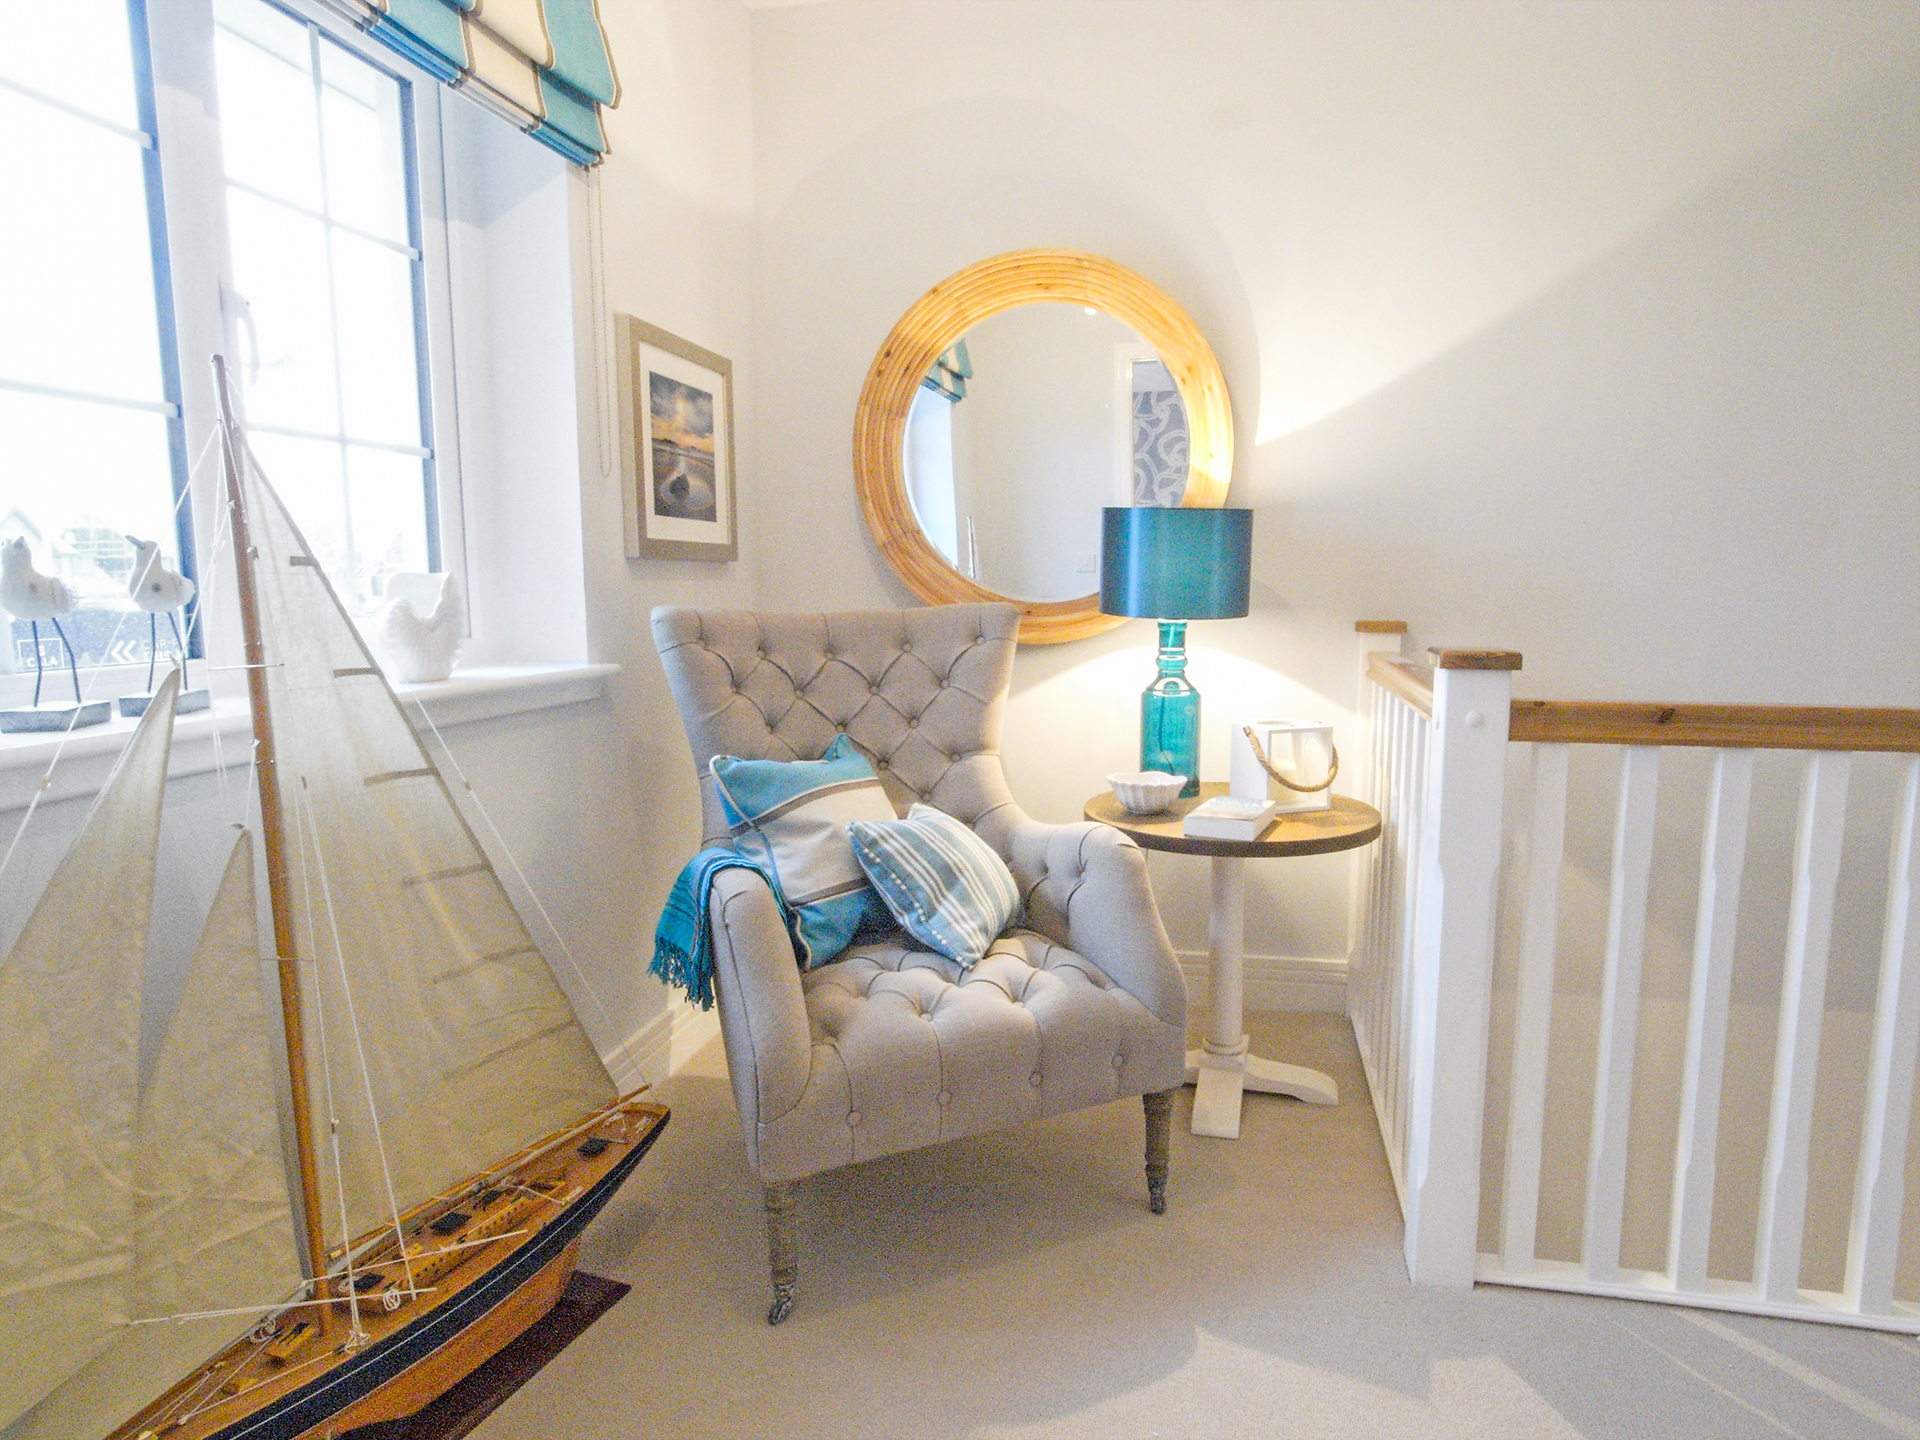 Nautical corner with chair for relaxing - Interior Design Advice Edinburgh & Fife